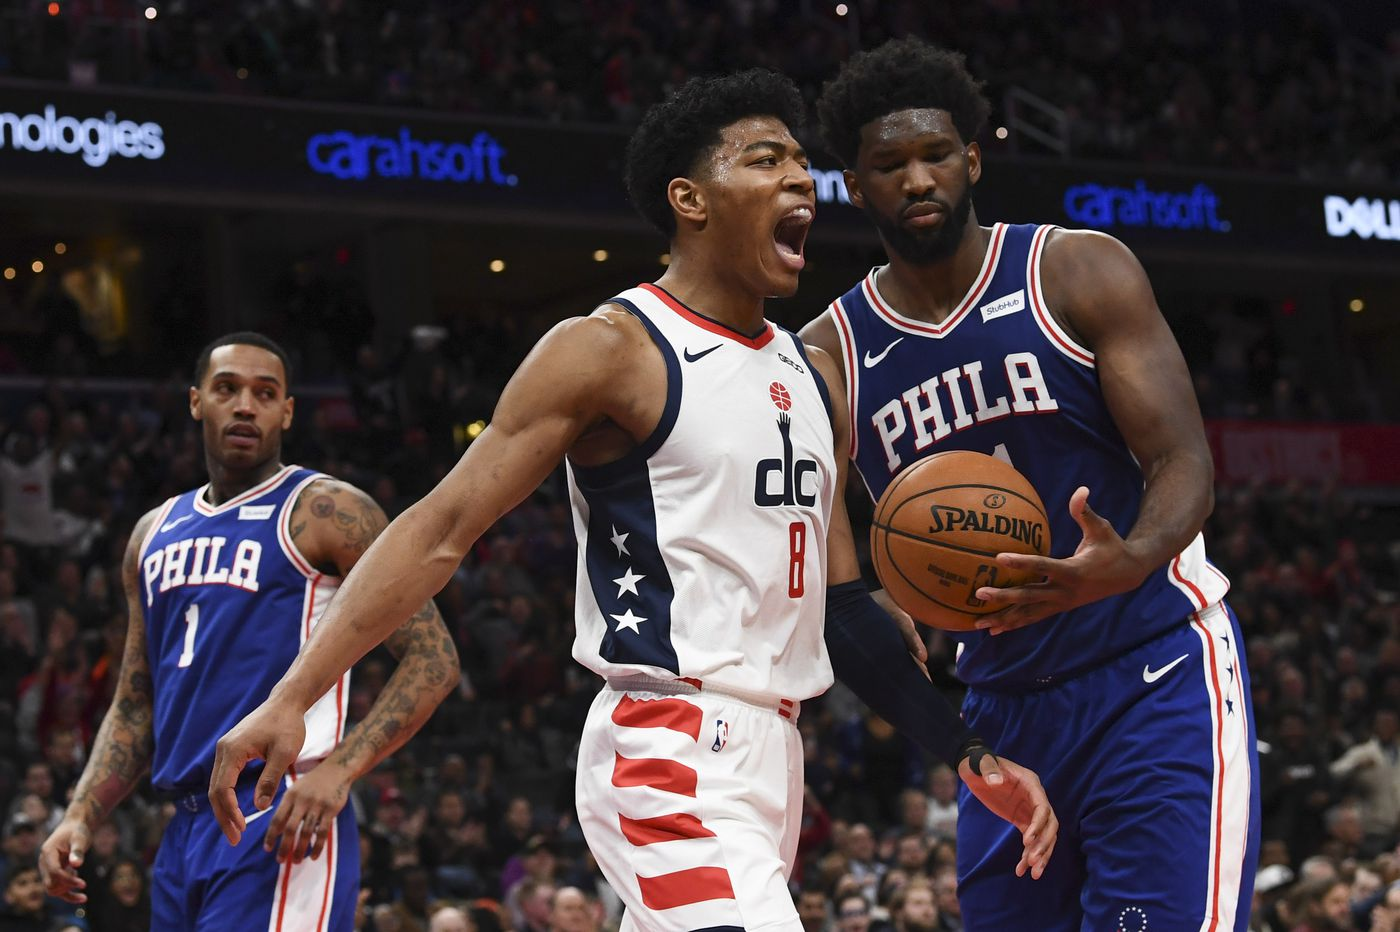 Sunday's game with Raptors starts a pivotal stretch for Sixers | Keith Pompey